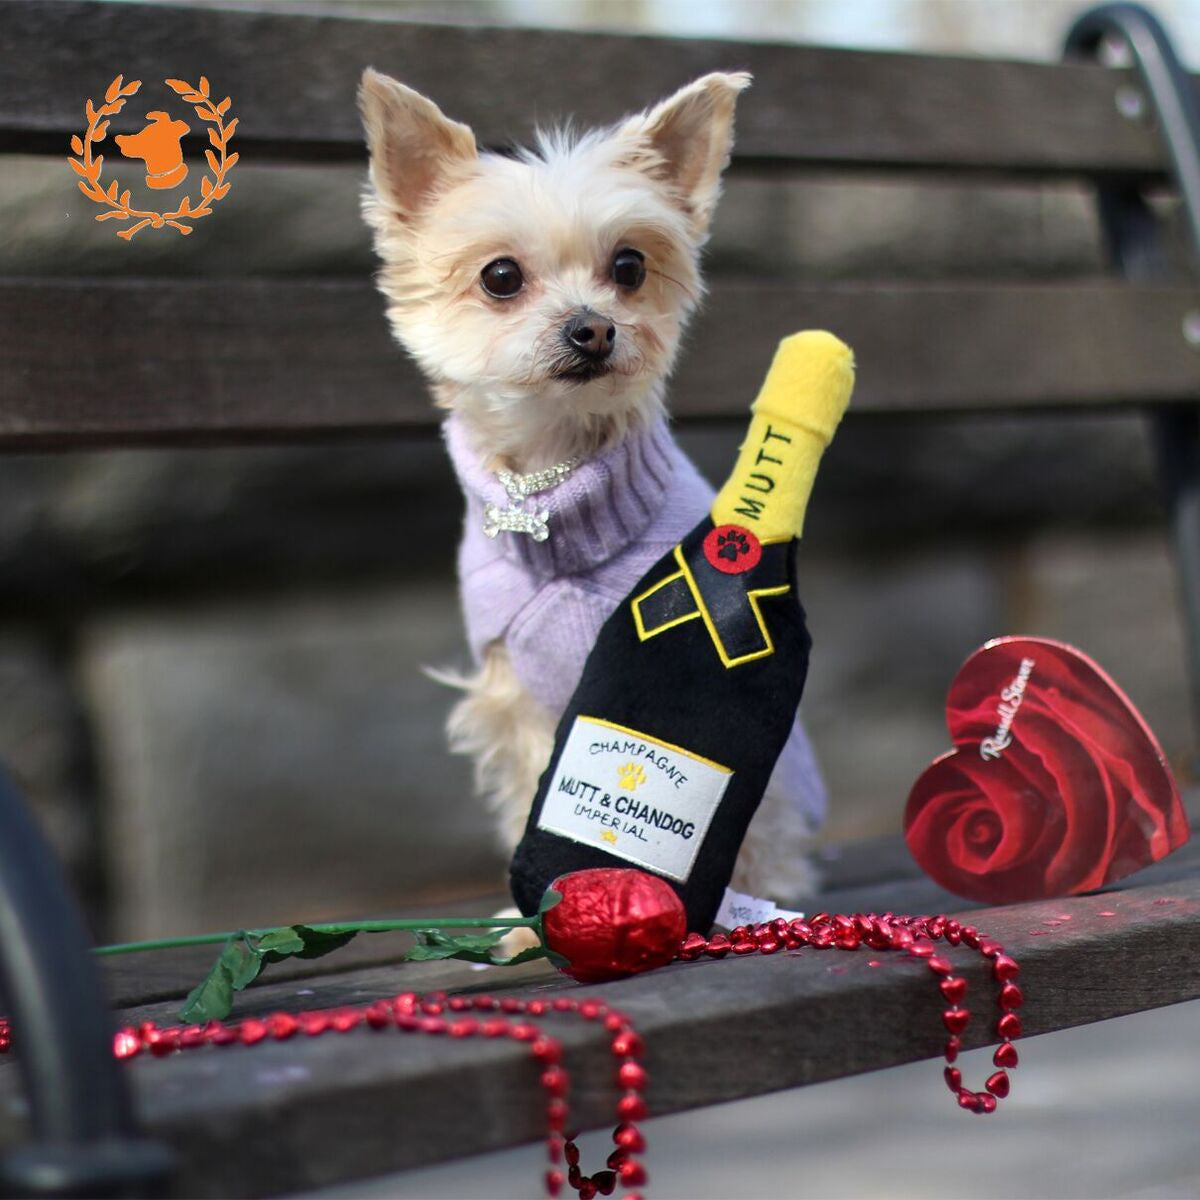 Mutt & Chandog - Champagne Toy - Dog Toy